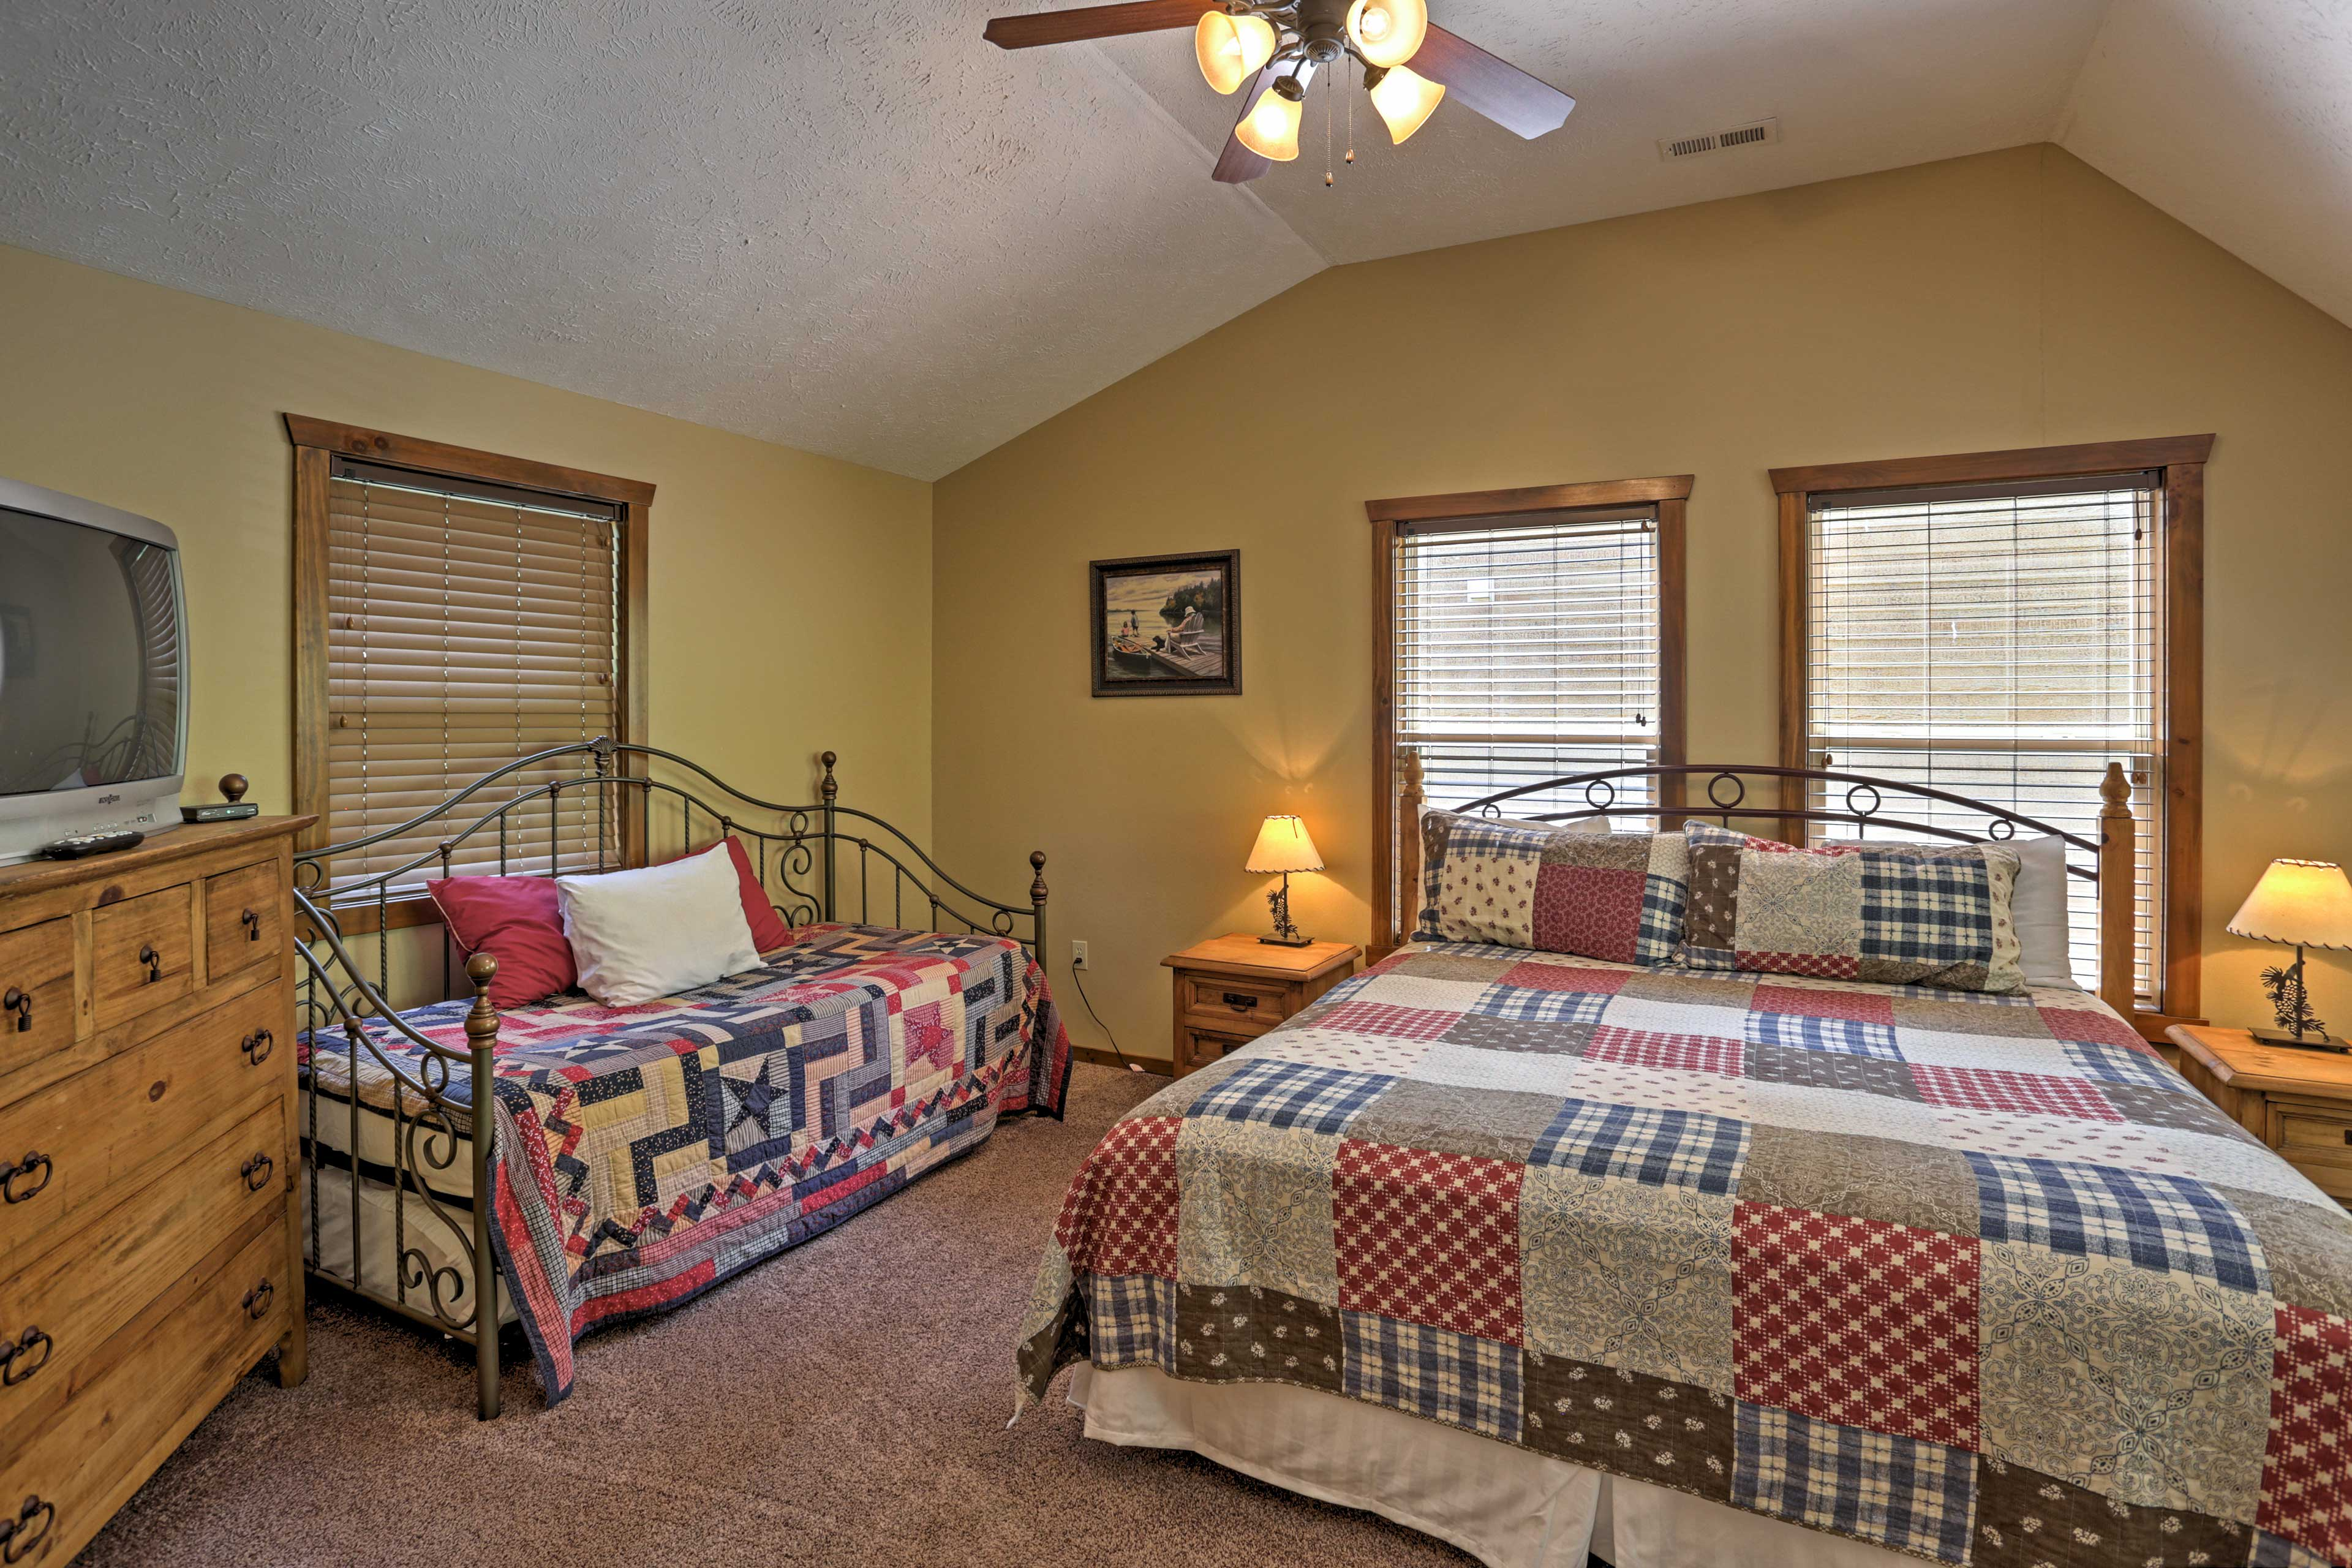 Bedroom 4 | King Bed | Twin Daybed w/ Twin Trundle Bed